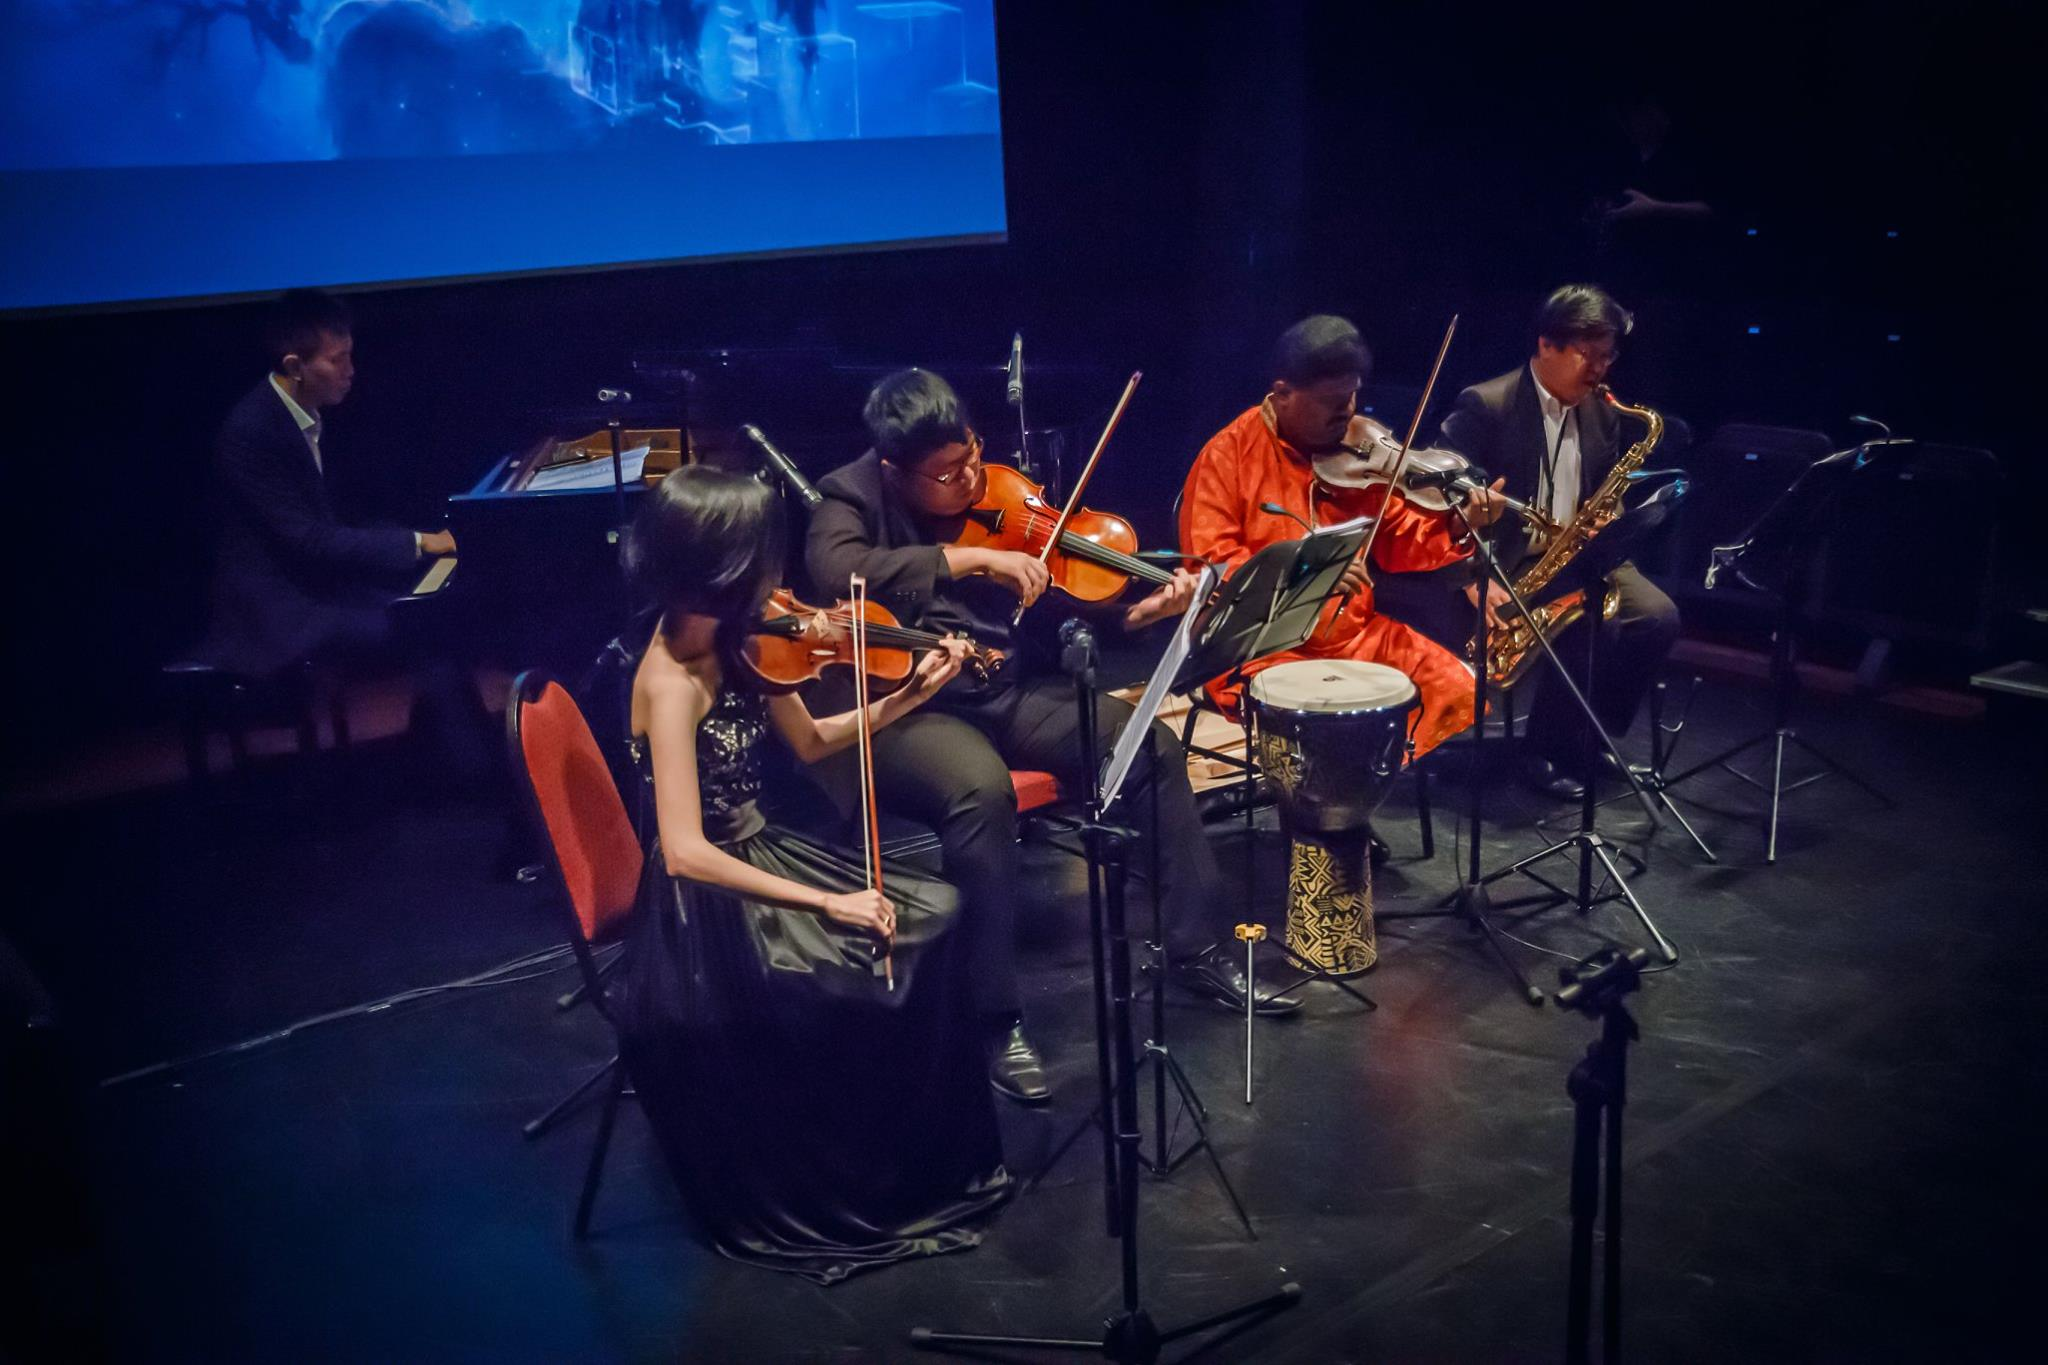 Featuring Christina Zhou (violin), Tze (piano), Teo Boon Chye (sax), Lazar T.Sebastine (Indian violin) and Benjamin Wong (viola) Story, music by Tze Toh 3D animation/CGI by Yixue Toh Photography by Teh Ting Ting  More photos  here